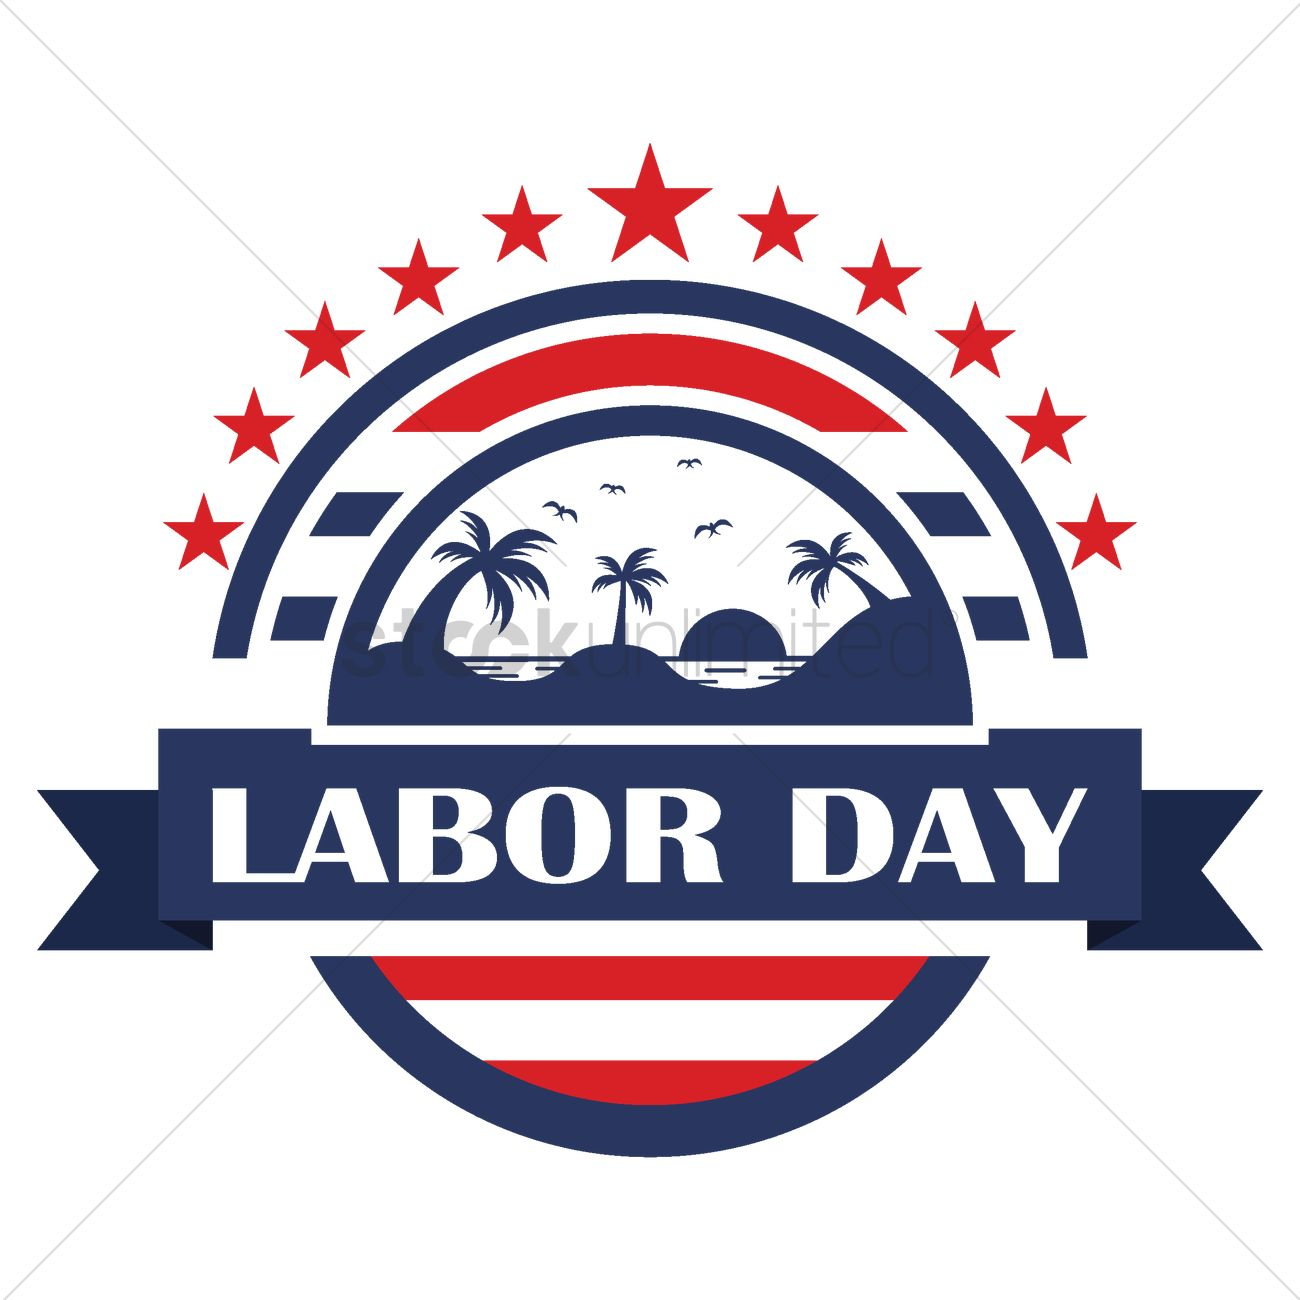 Labor day label vector image 1553586 stockunlimited labor day label vector graphic buycottarizona Choice Image